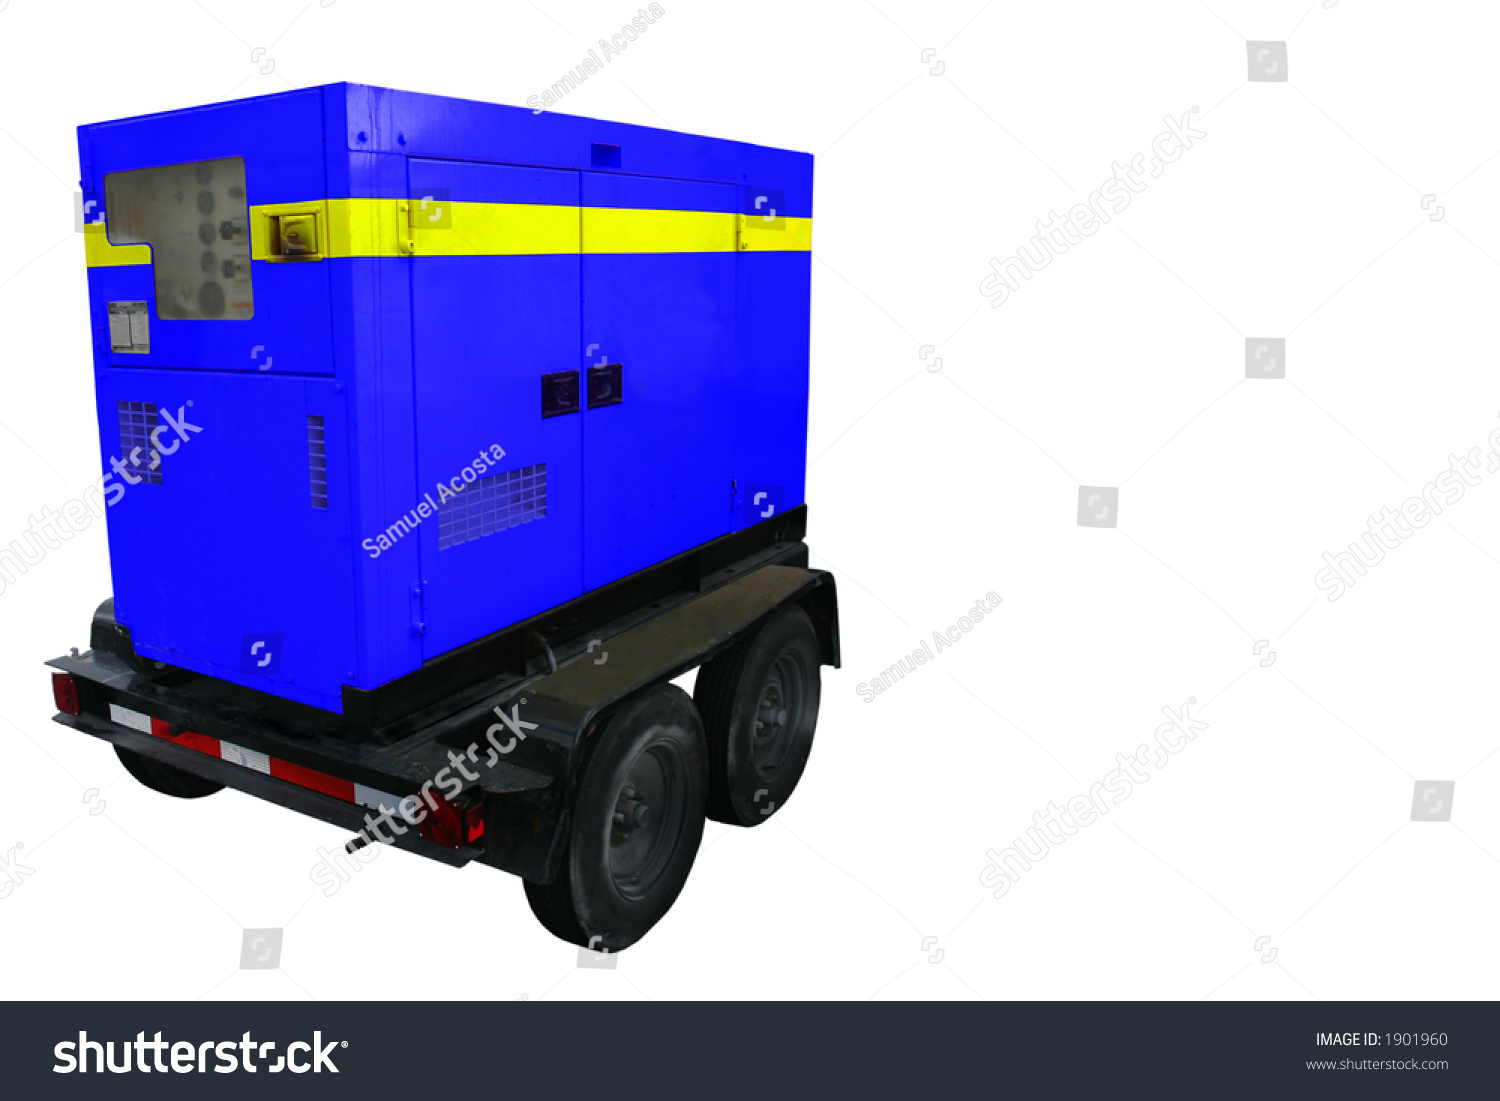 Portable Generator Trailer All Names Removed Stock Photo